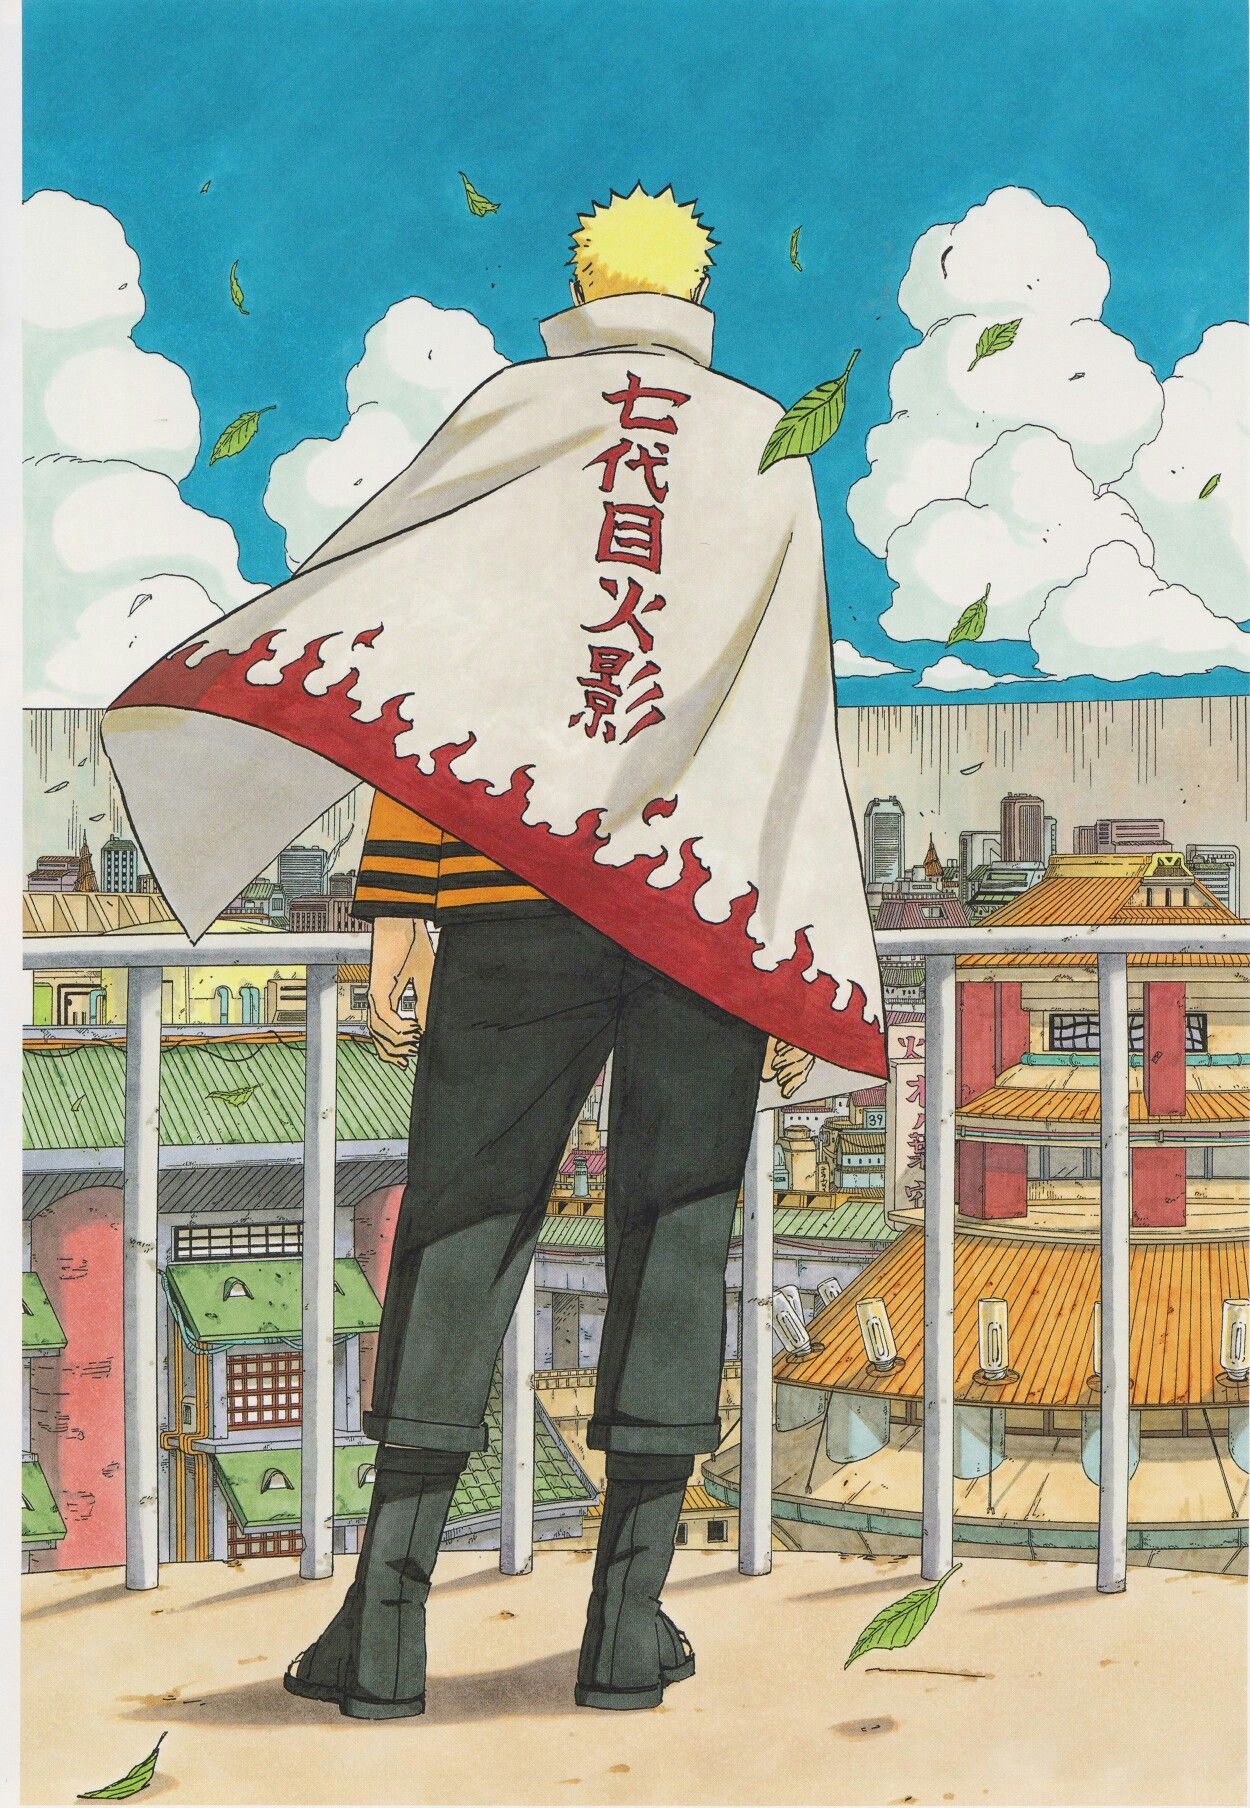 Naruto Hokage Large Image With Images Anime Anime Naruto